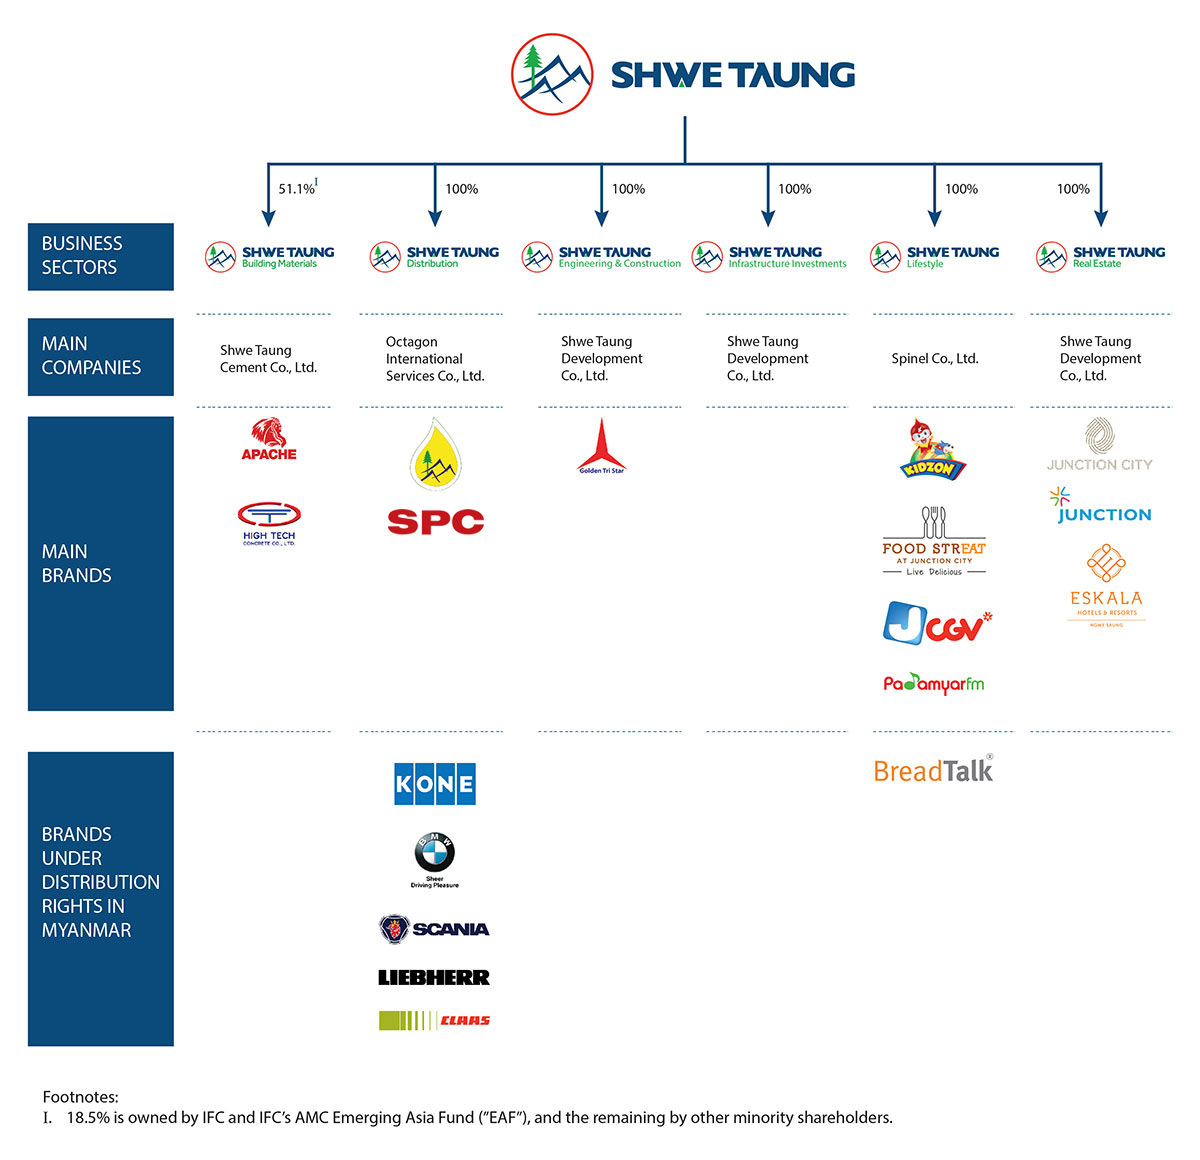 Corporate Structure – Shwe Taung Group